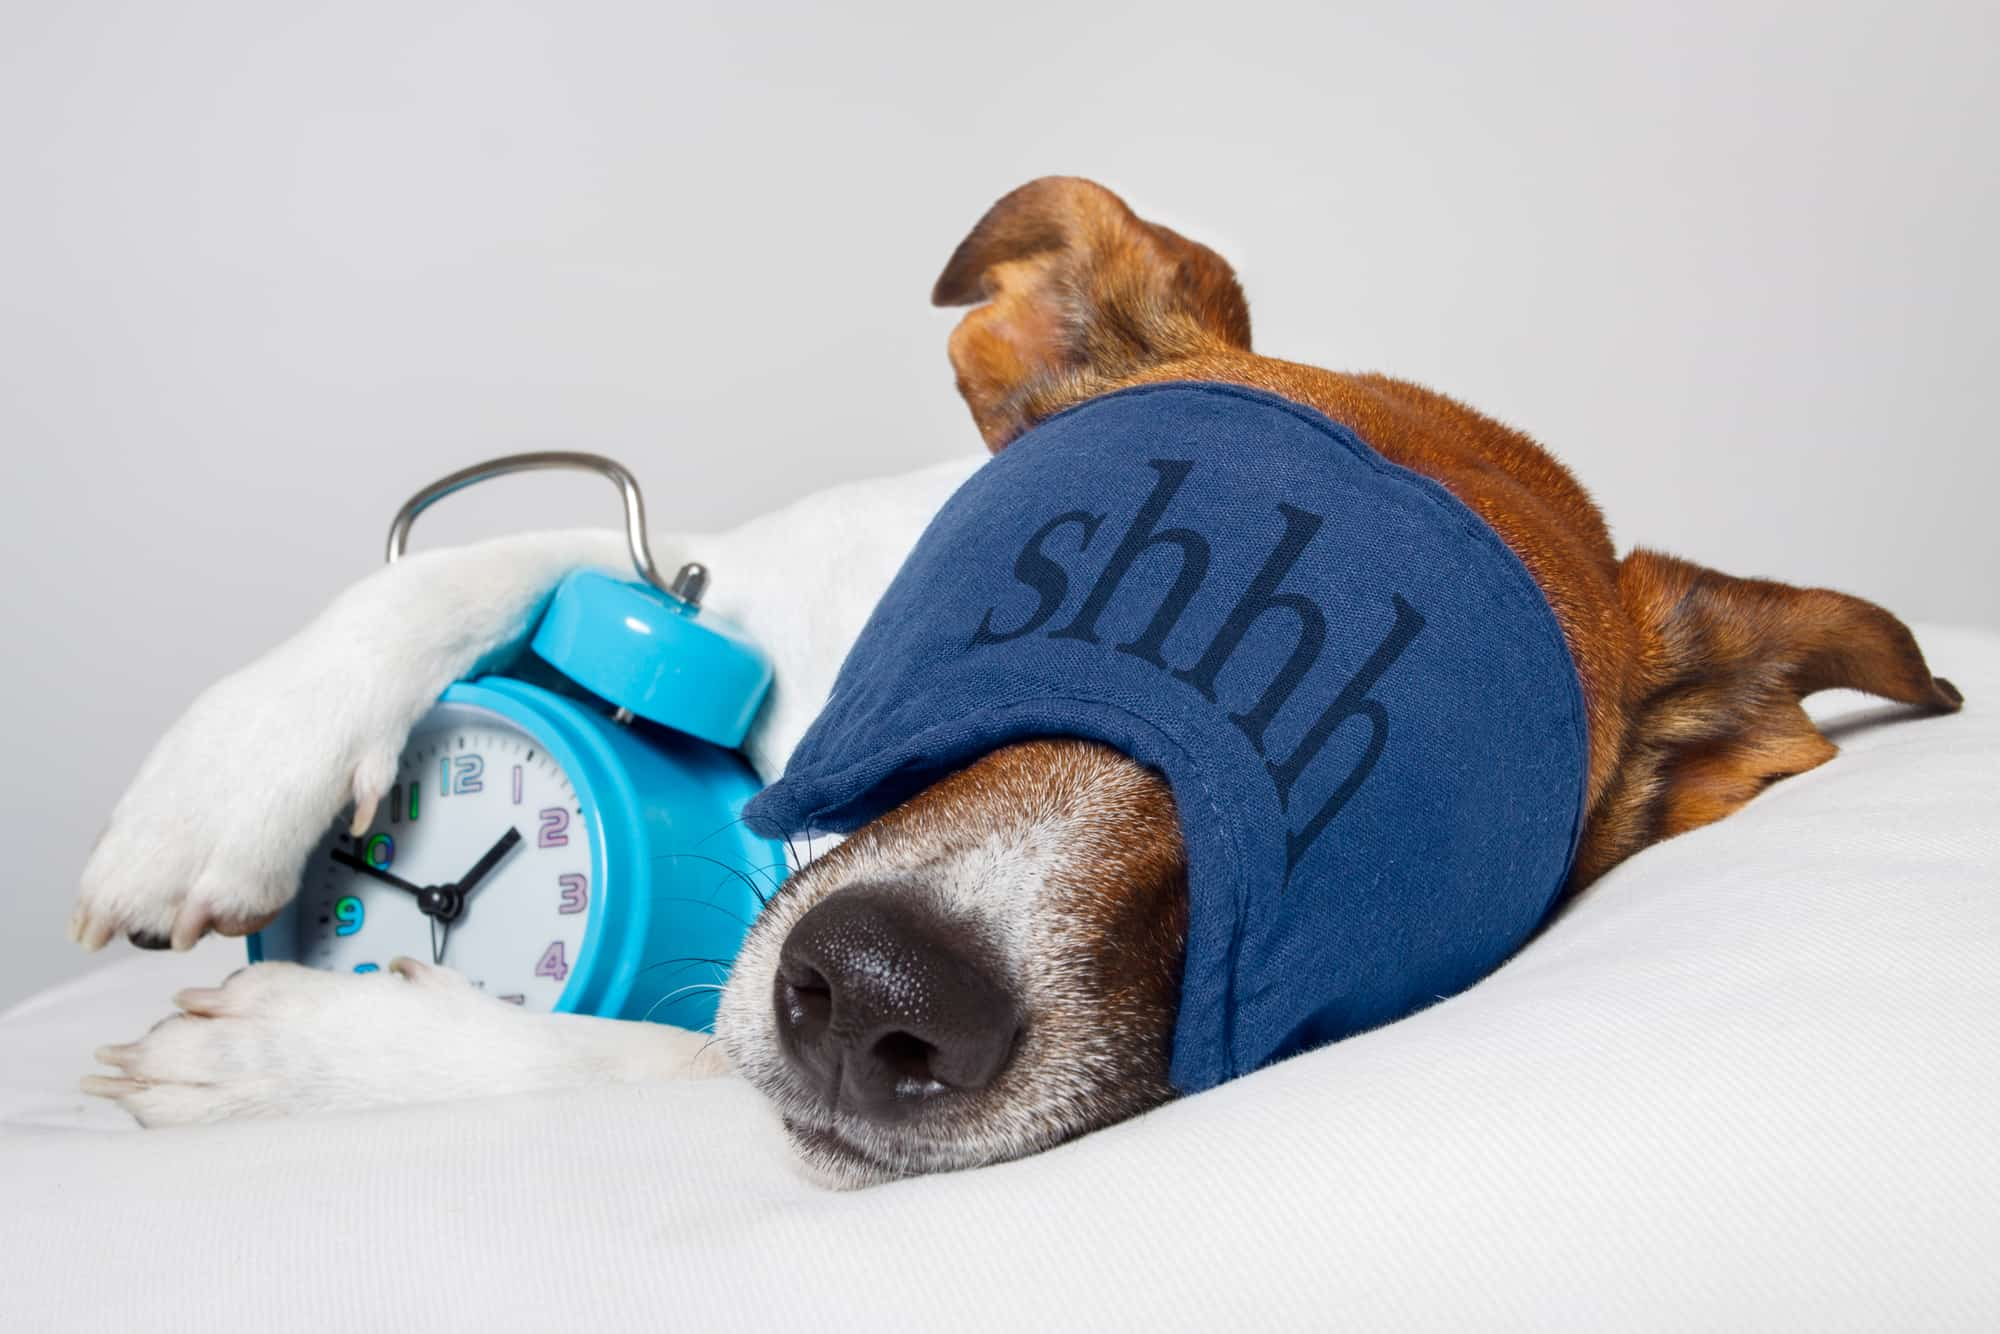 dog with eye mask and an alarm clock asleep on a bed